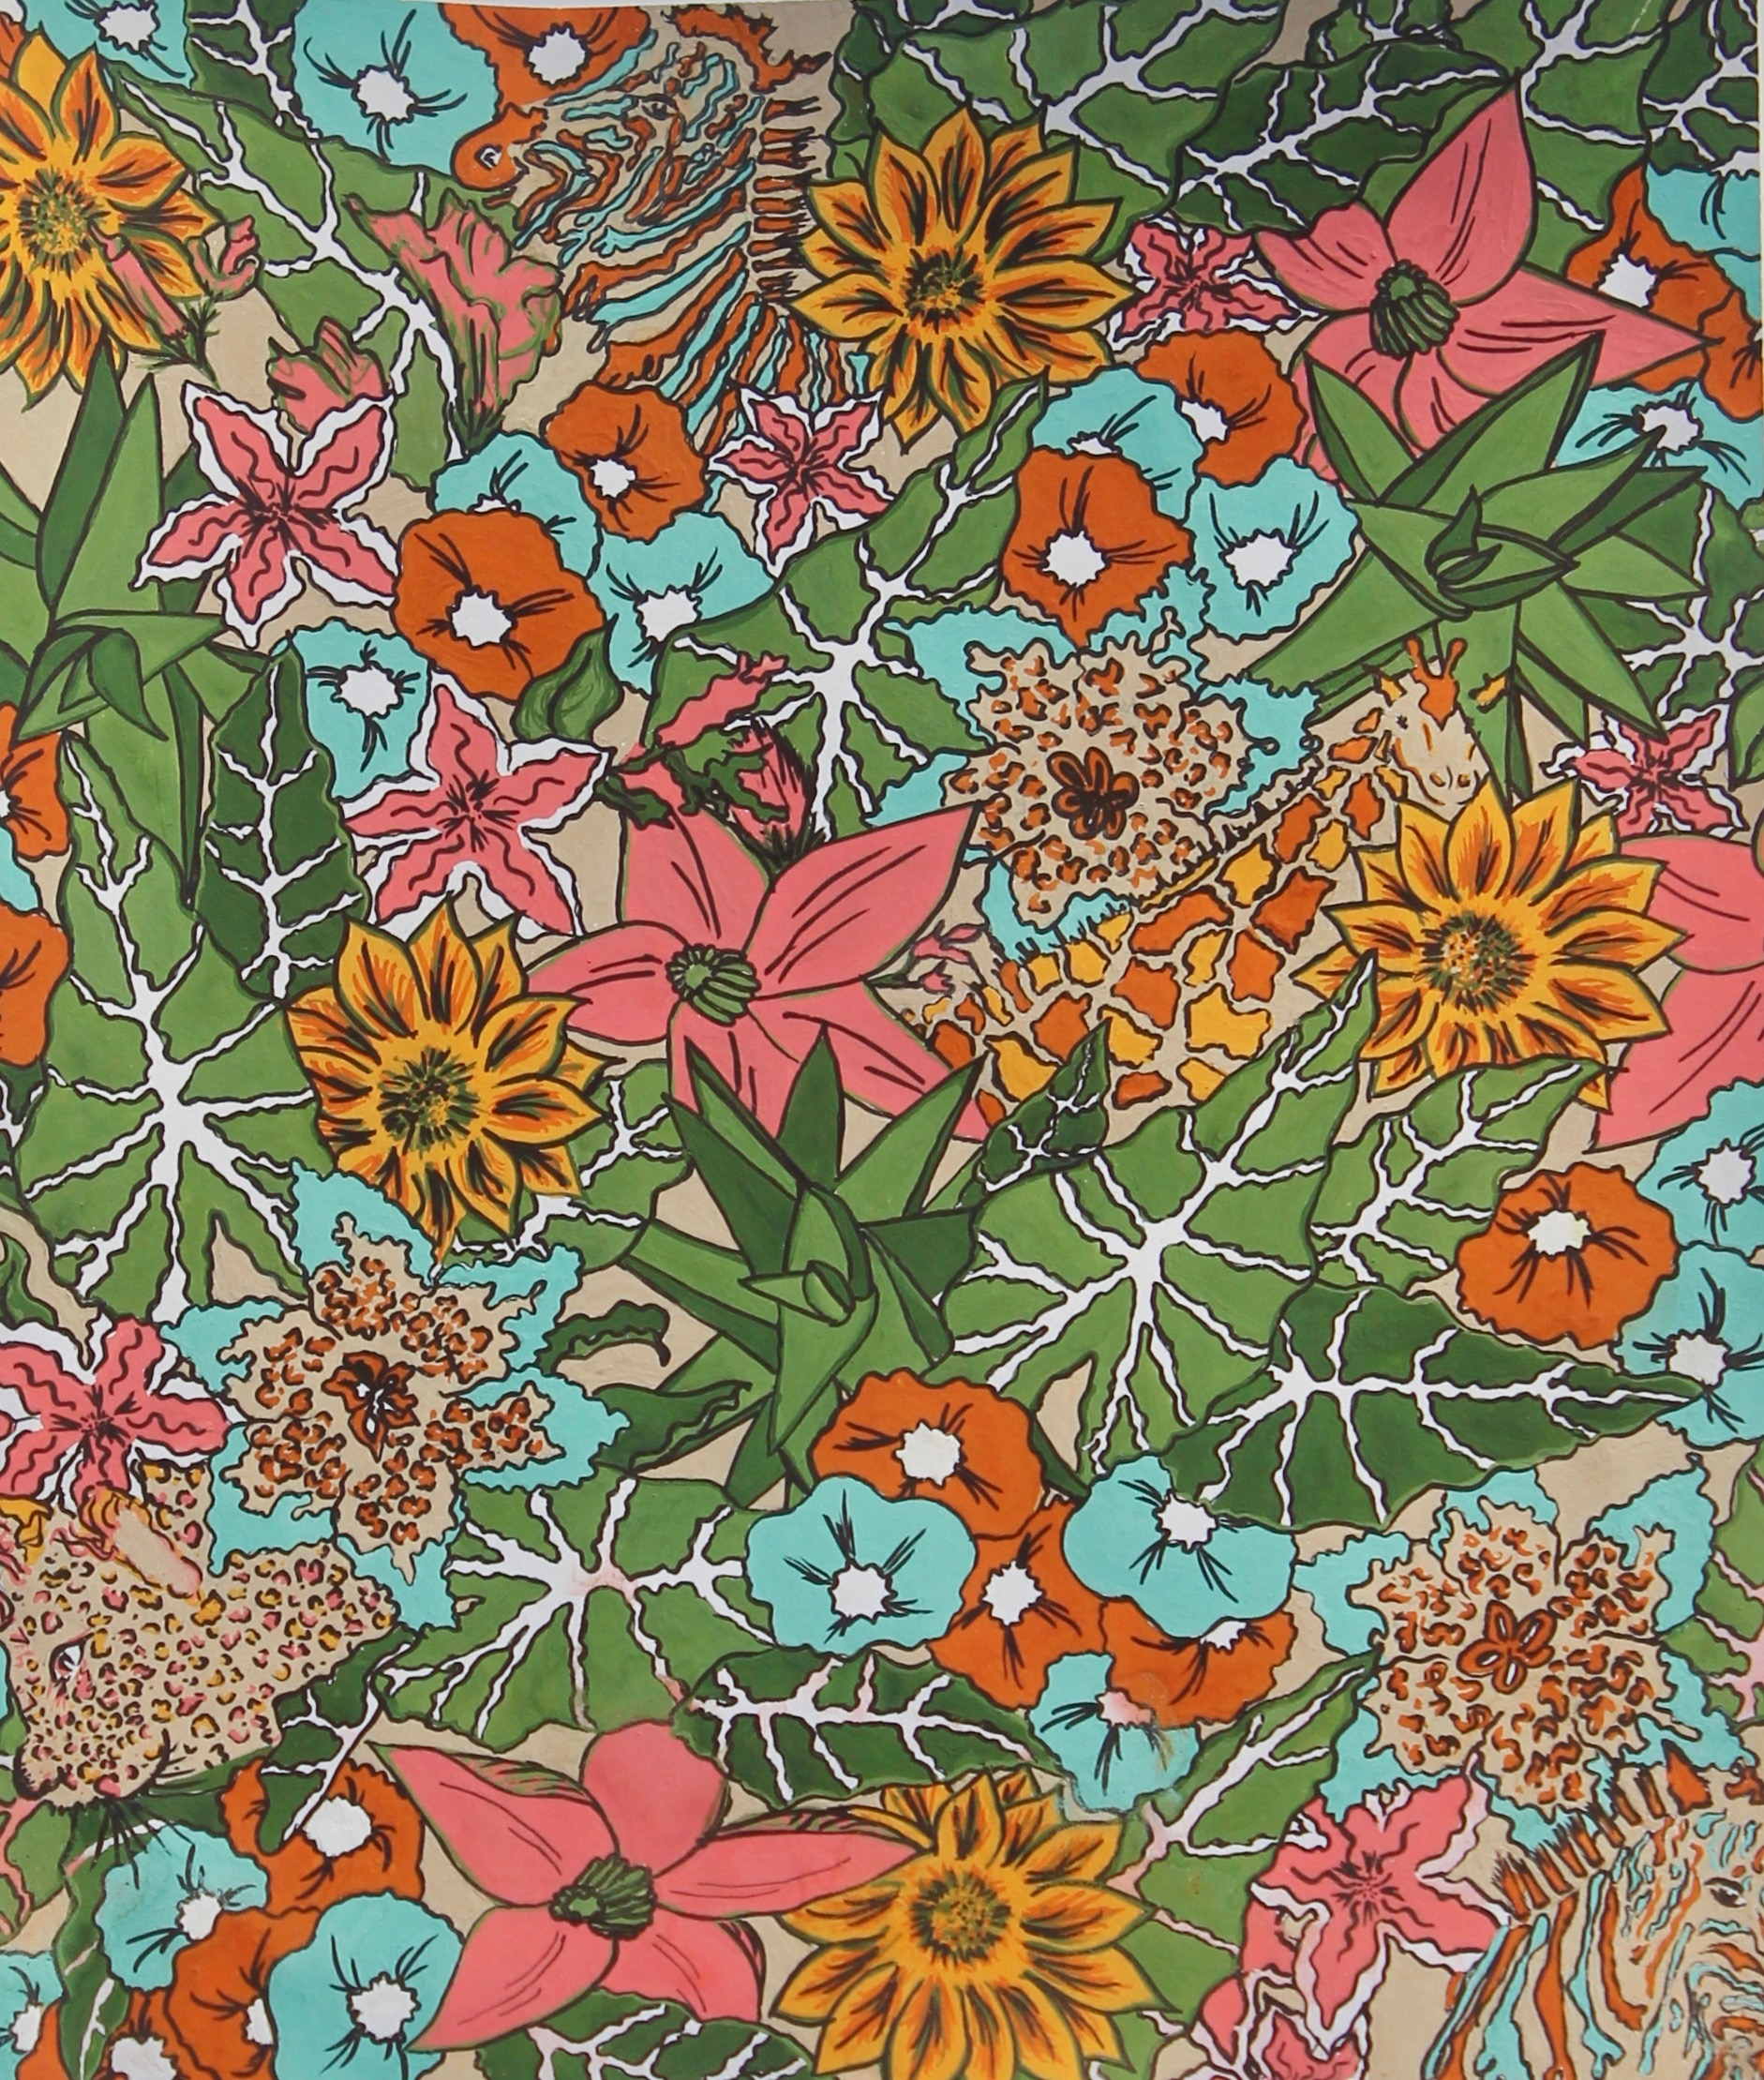 Safari Soiree | a playful take on a liberty floral with vivid color and animals. Windsor Newton Gouache and micron pens.